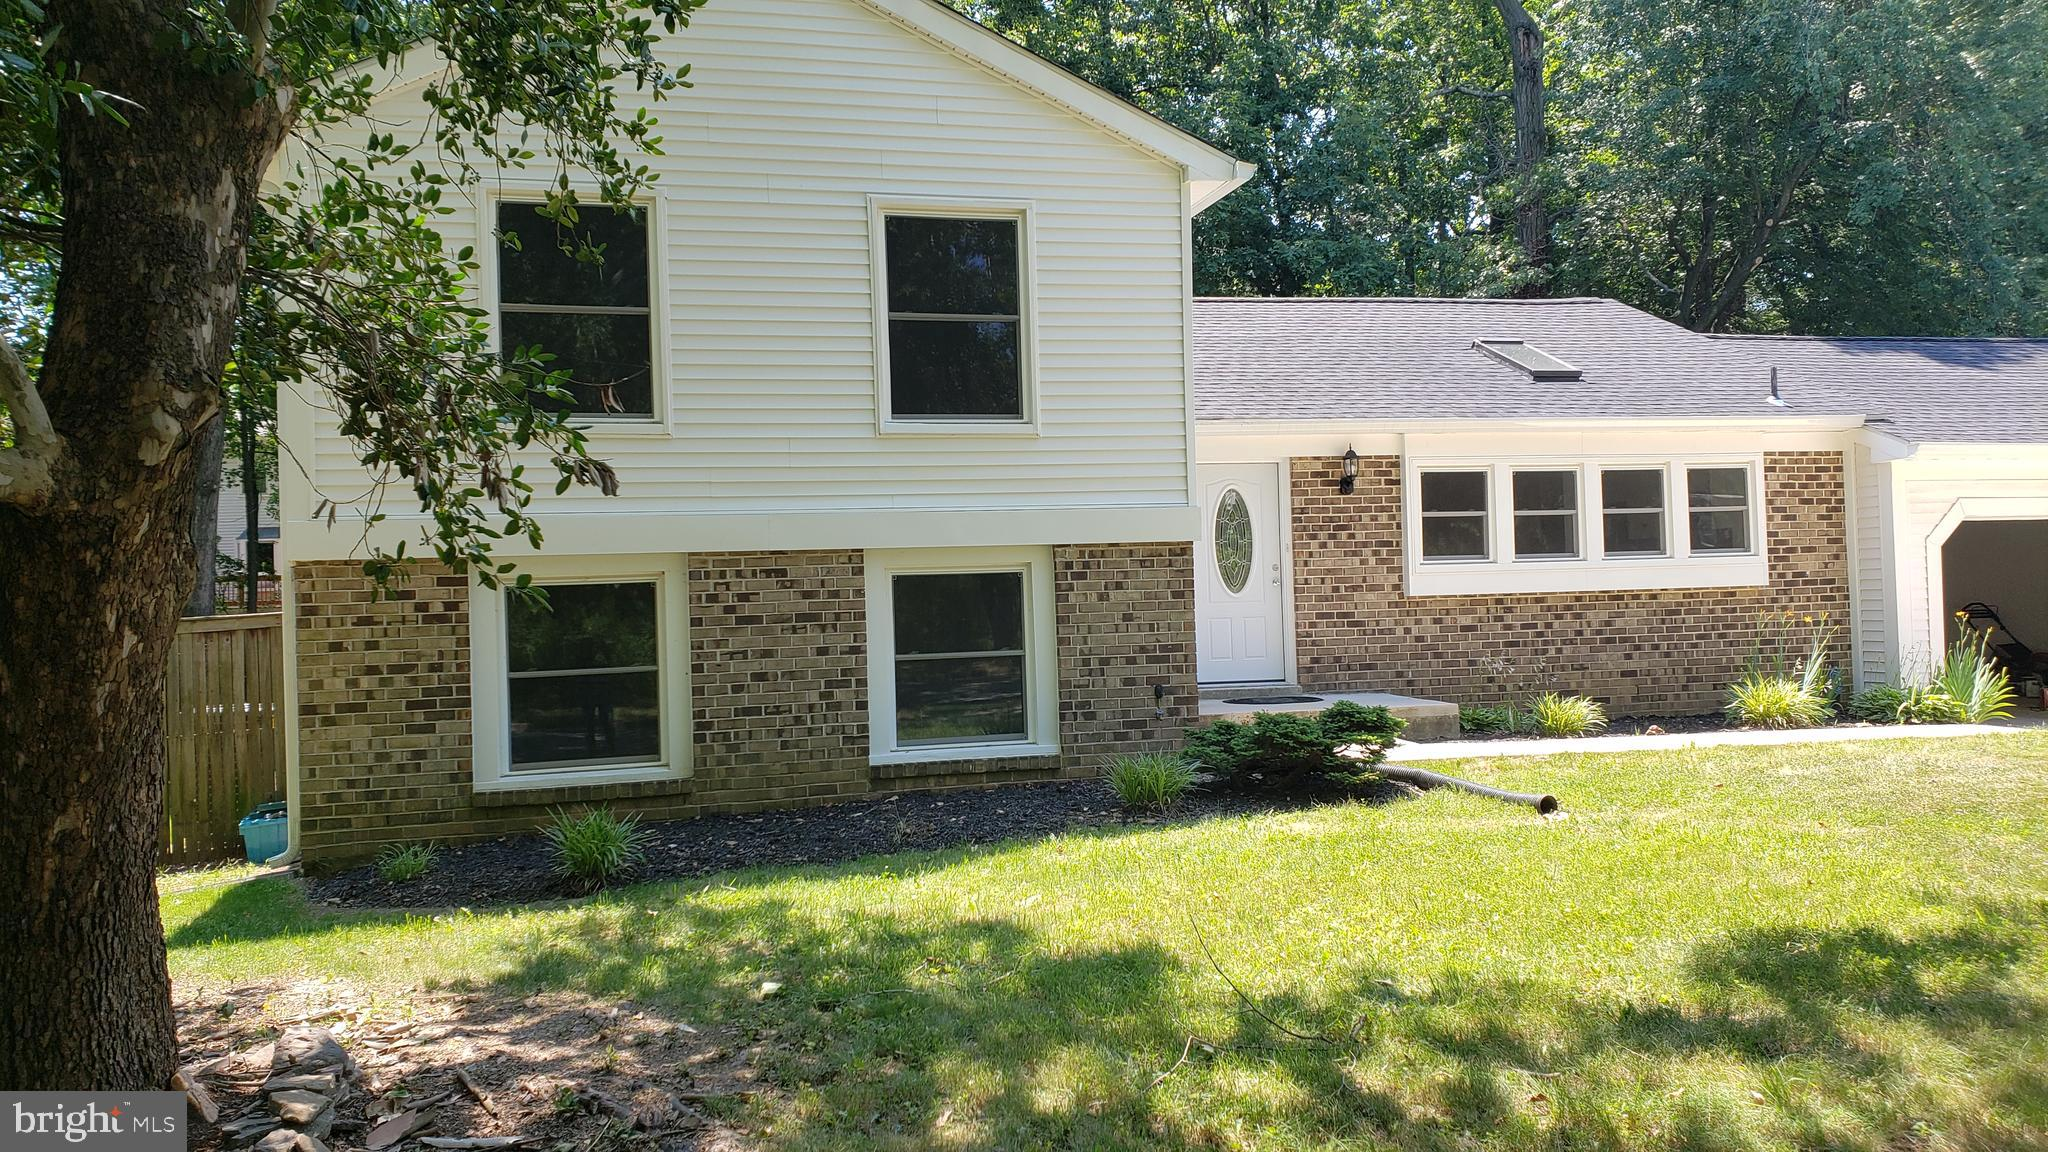 12903 N POINT LANE, LAUREL, MD 20708